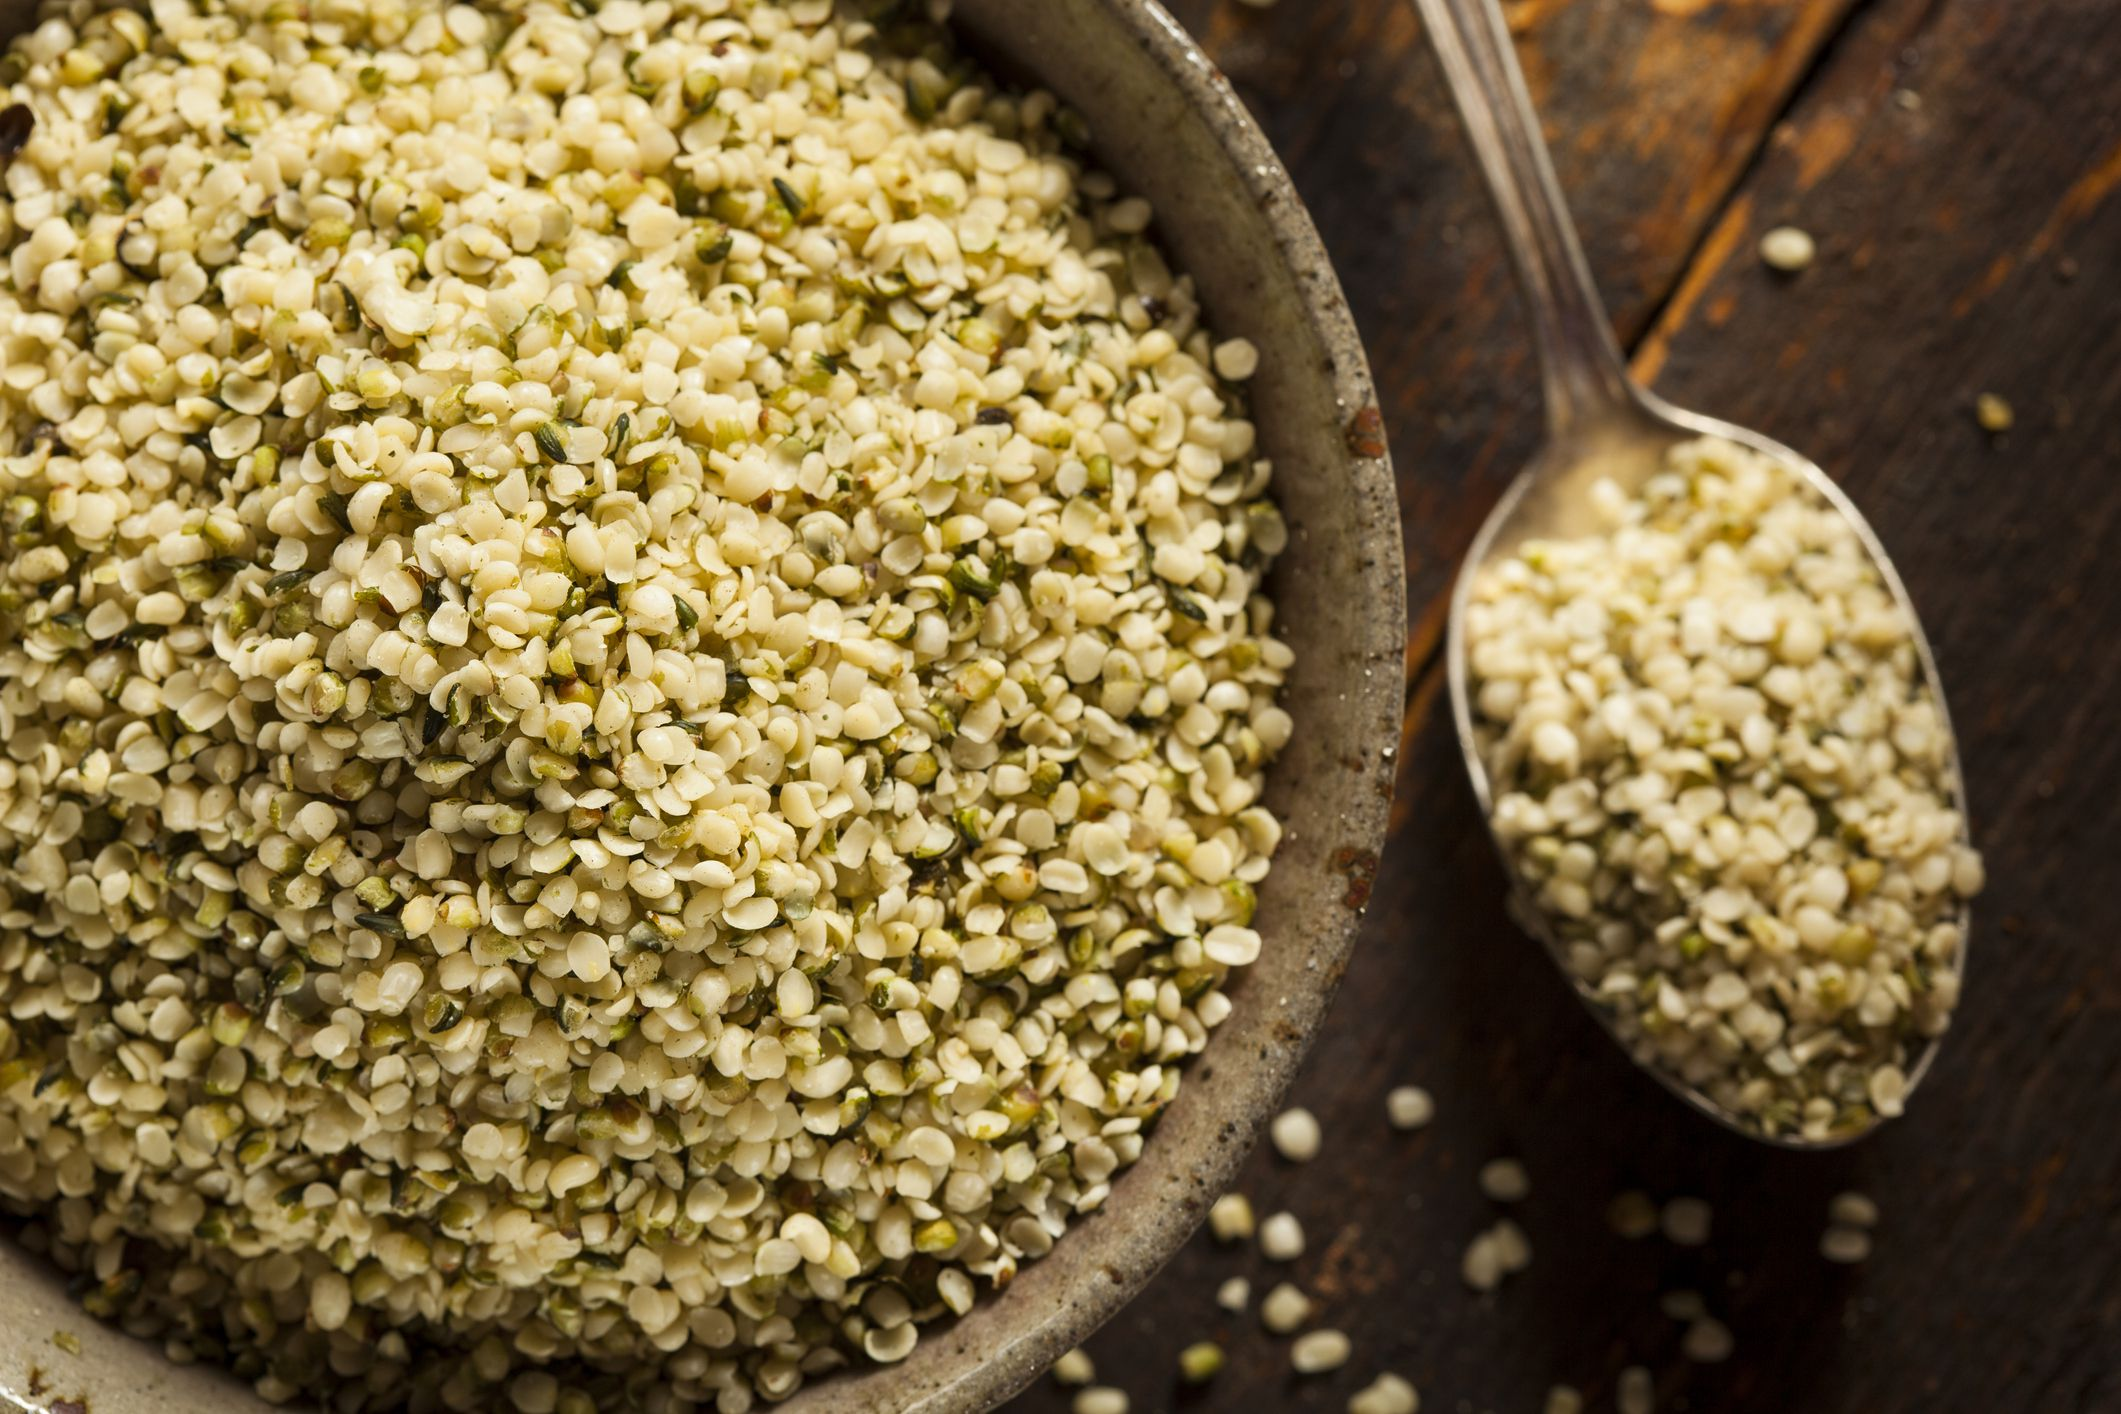 Uses and Health Benefits of Eating Hemp Seeds